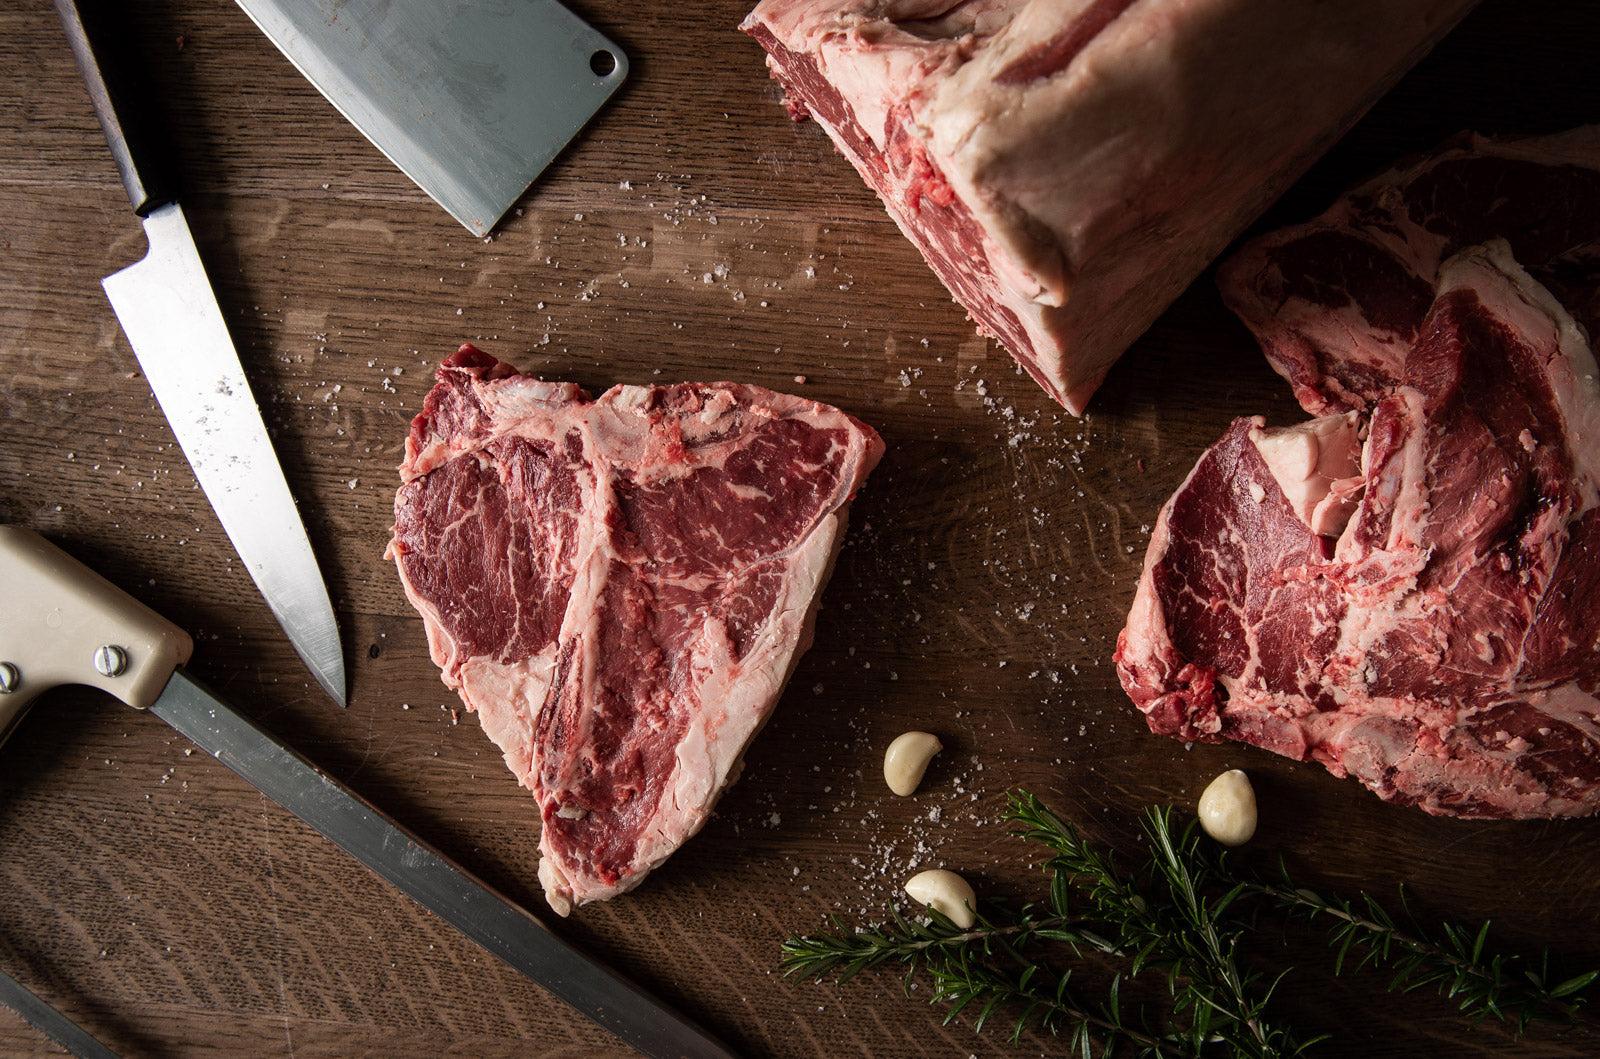 How to Cook Steak at Home Like Bistecca